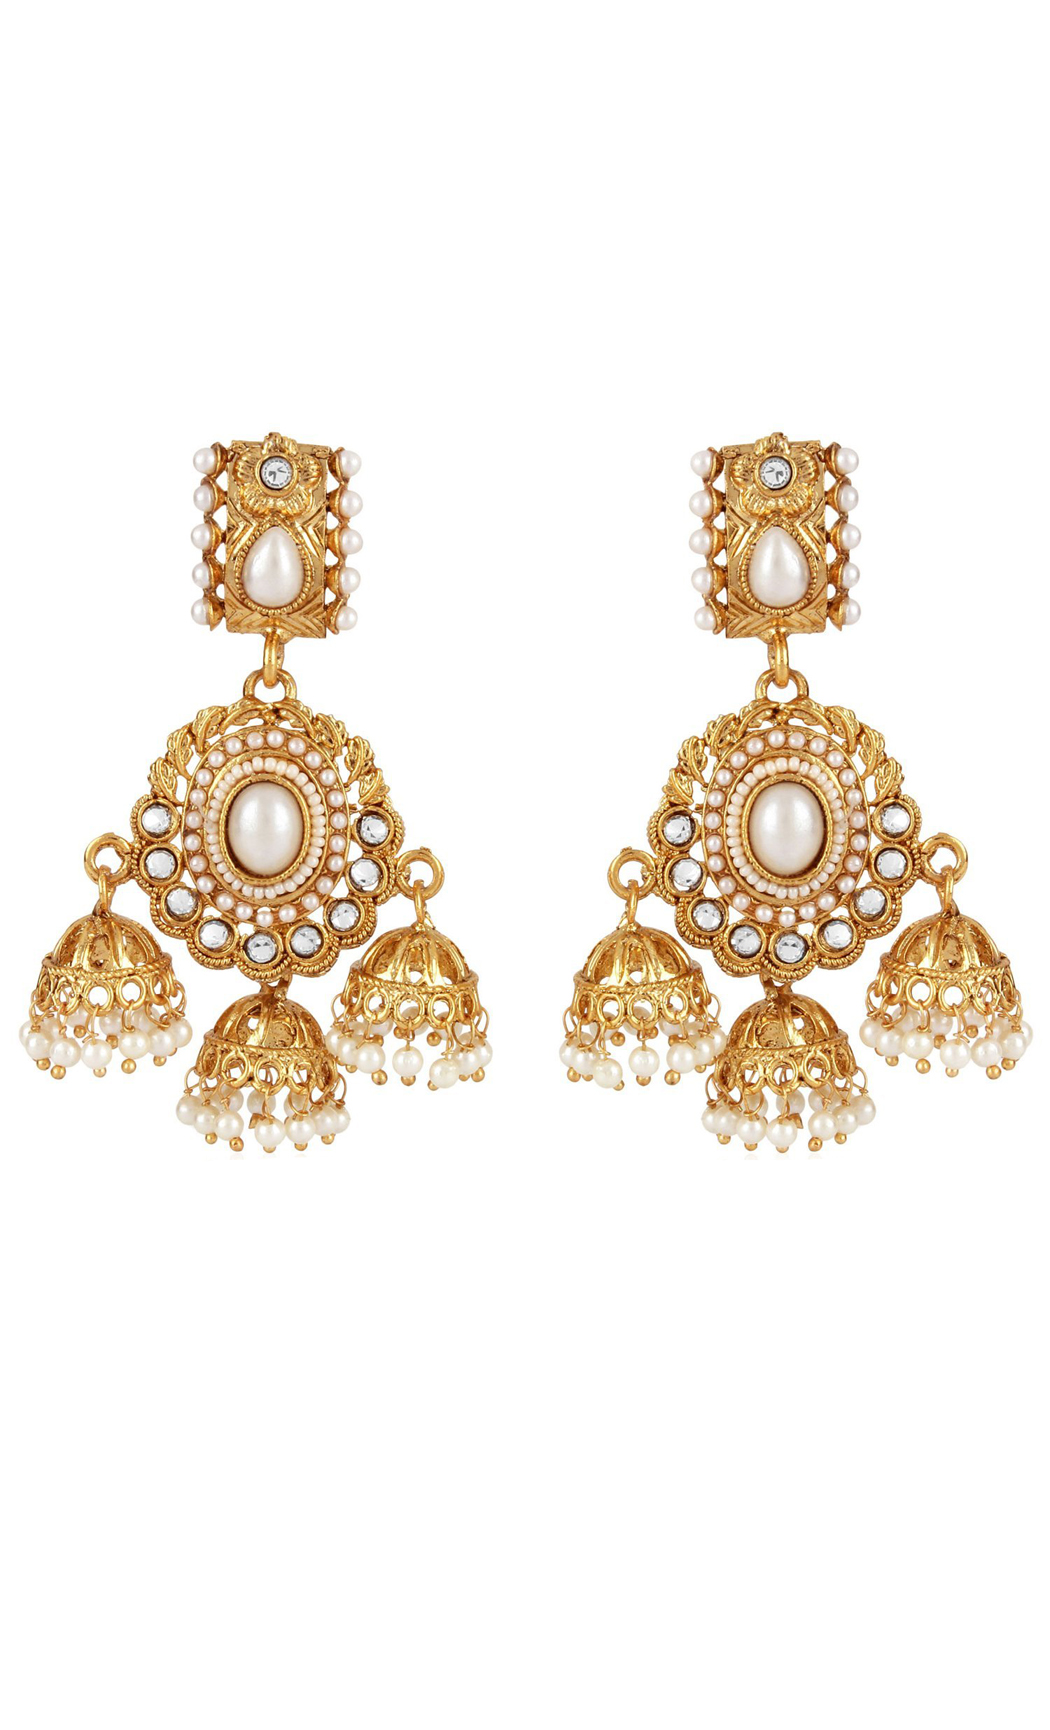 Gold Kundan Jhumkas with Pearls | Wedding Earrings | Buy Online